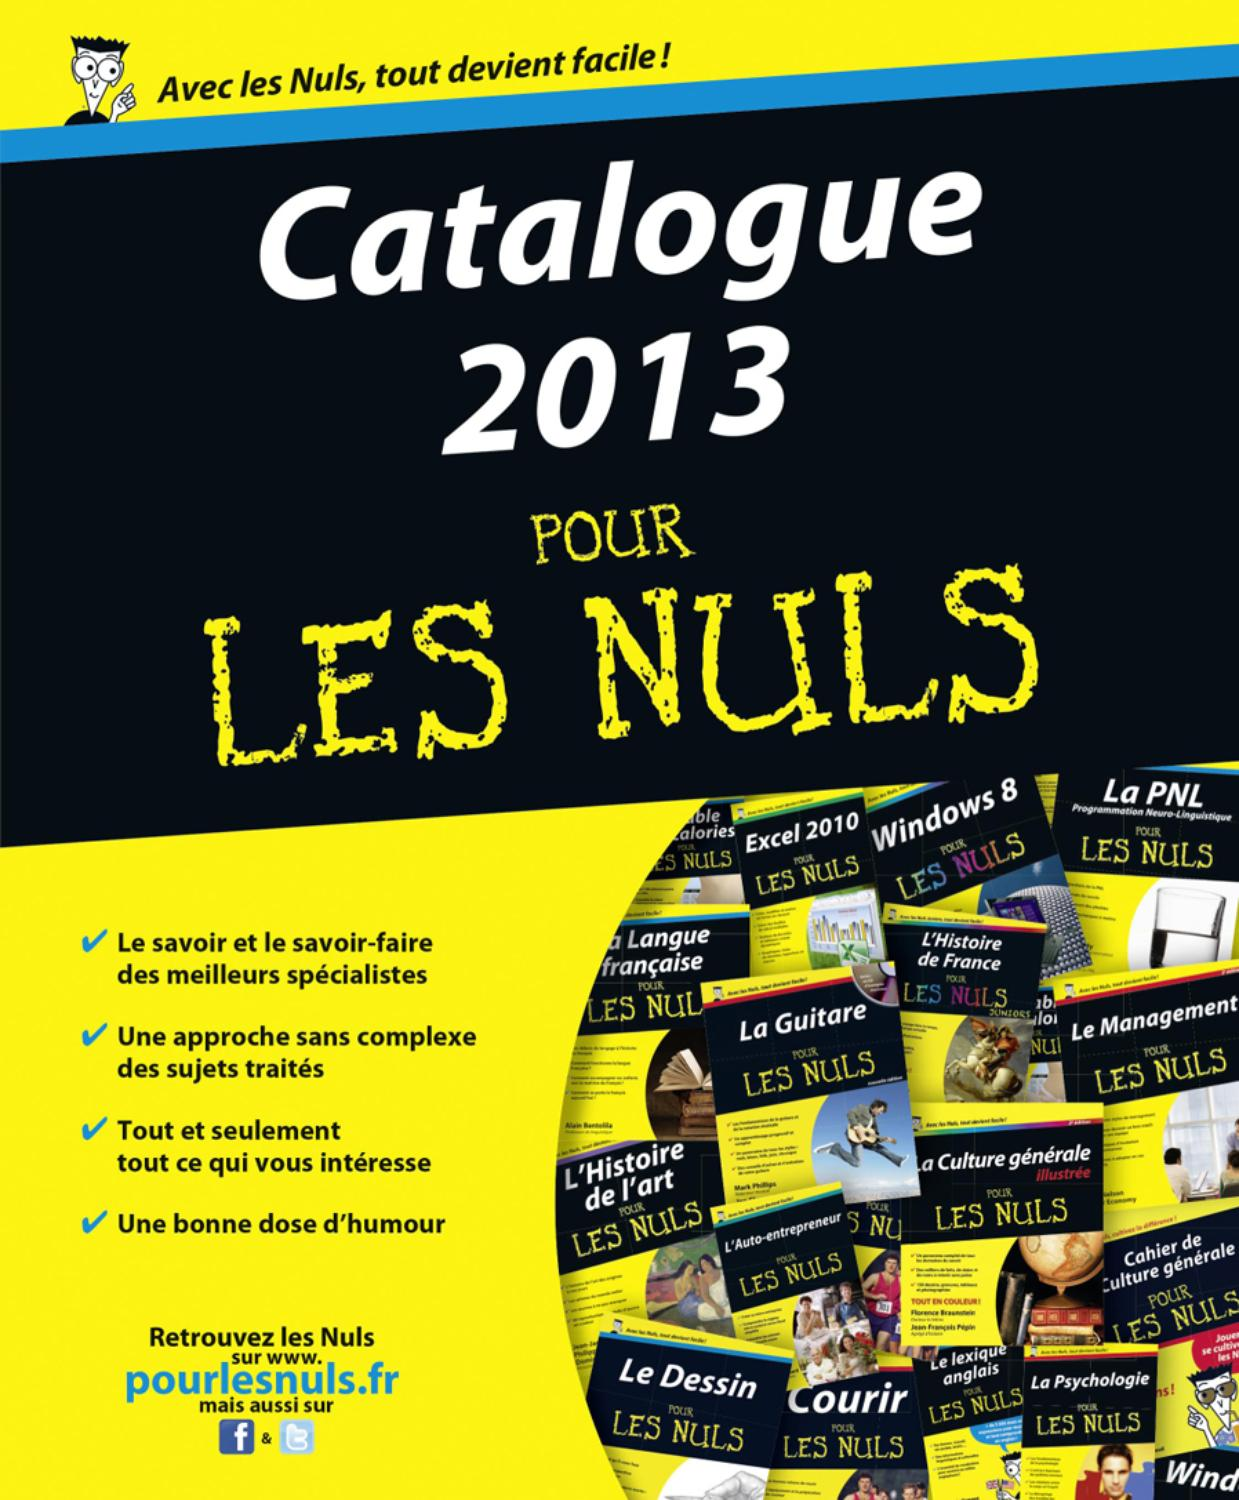 catalogue 2013 pour les nuls by di8 issuu. Black Bedroom Furniture Sets. Home Design Ideas